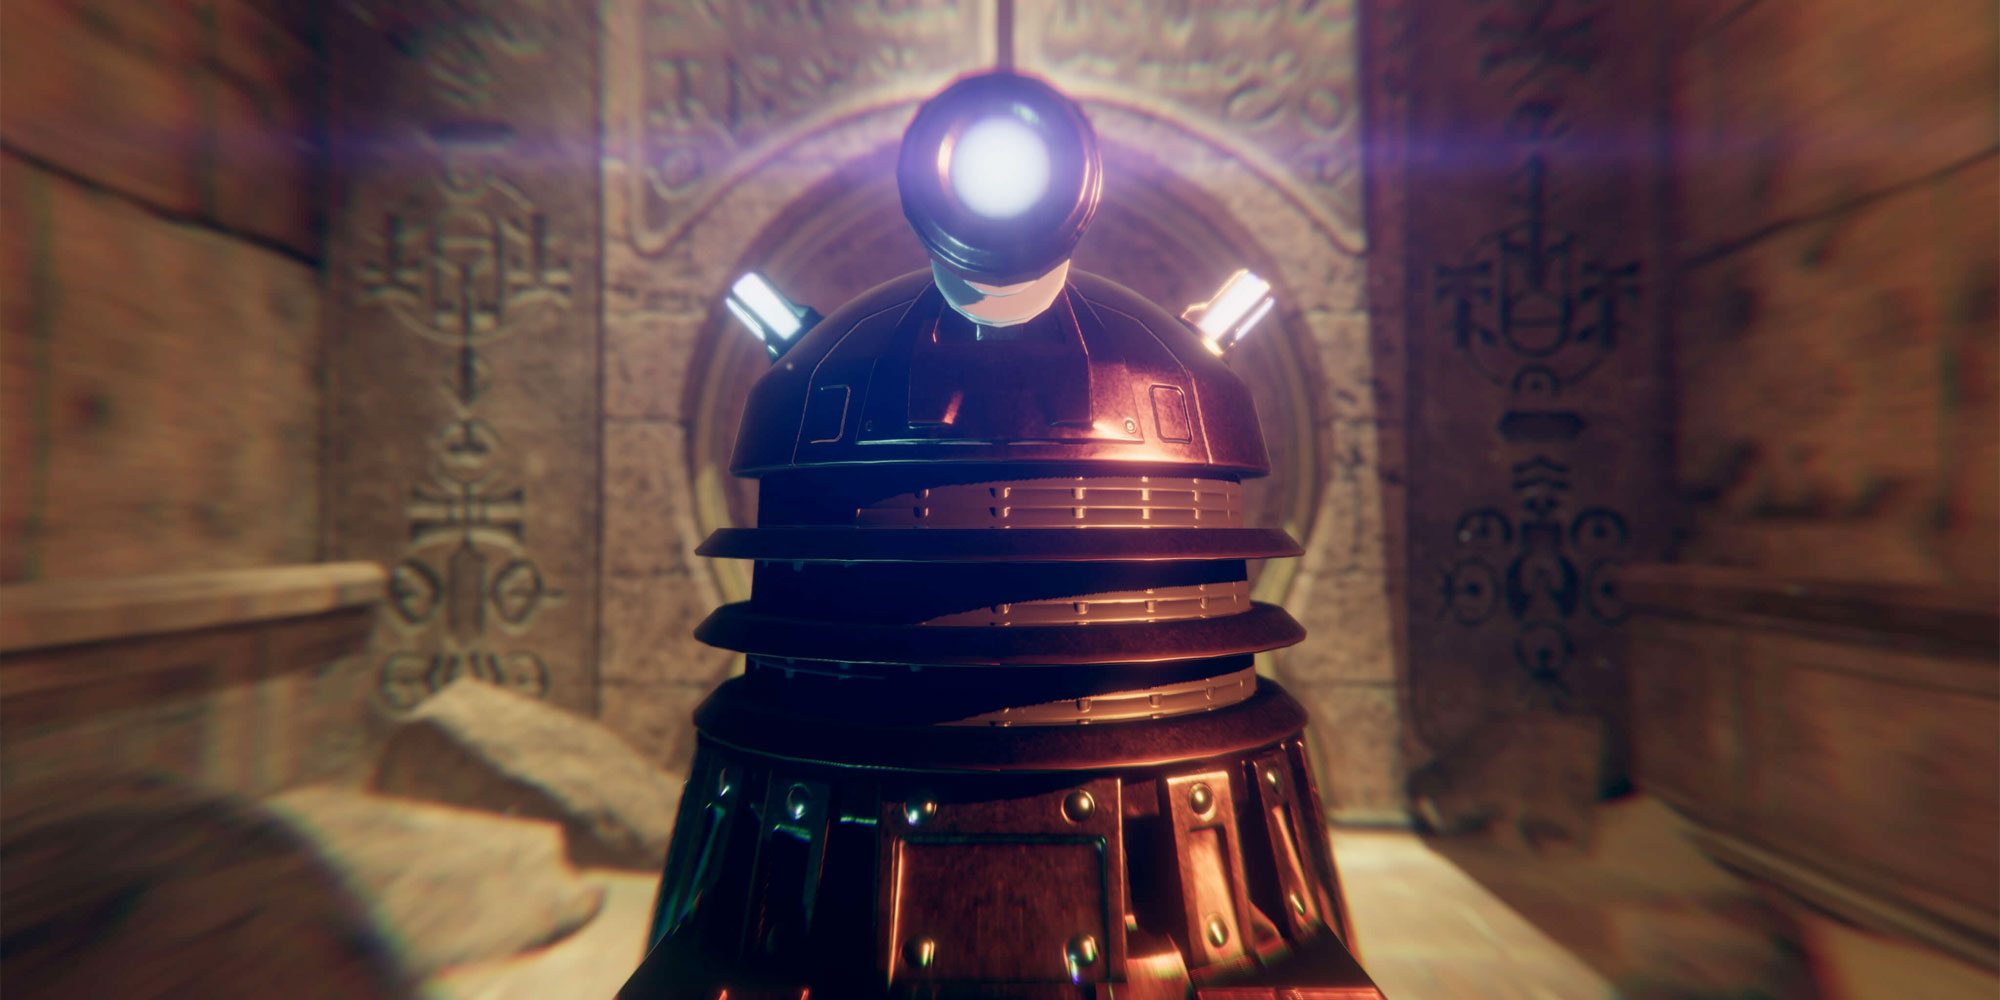 Doctor Who: The Edge of Time VR teaser trailer released, to be released in September